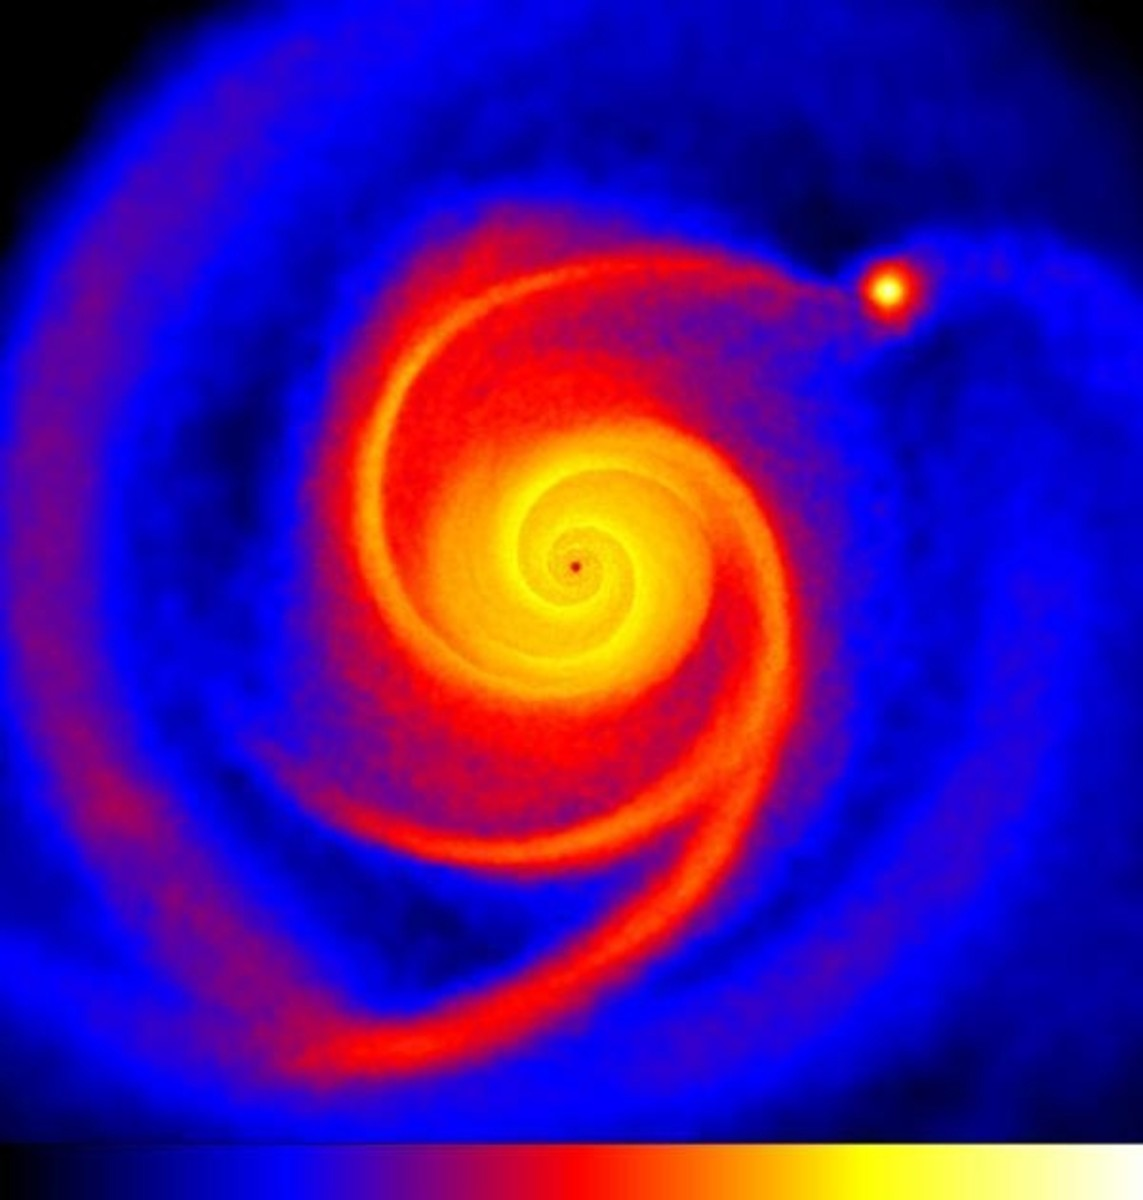 This forming Proto-Planet shows the vortex nature of how planets form from centrifugal force and gravity.